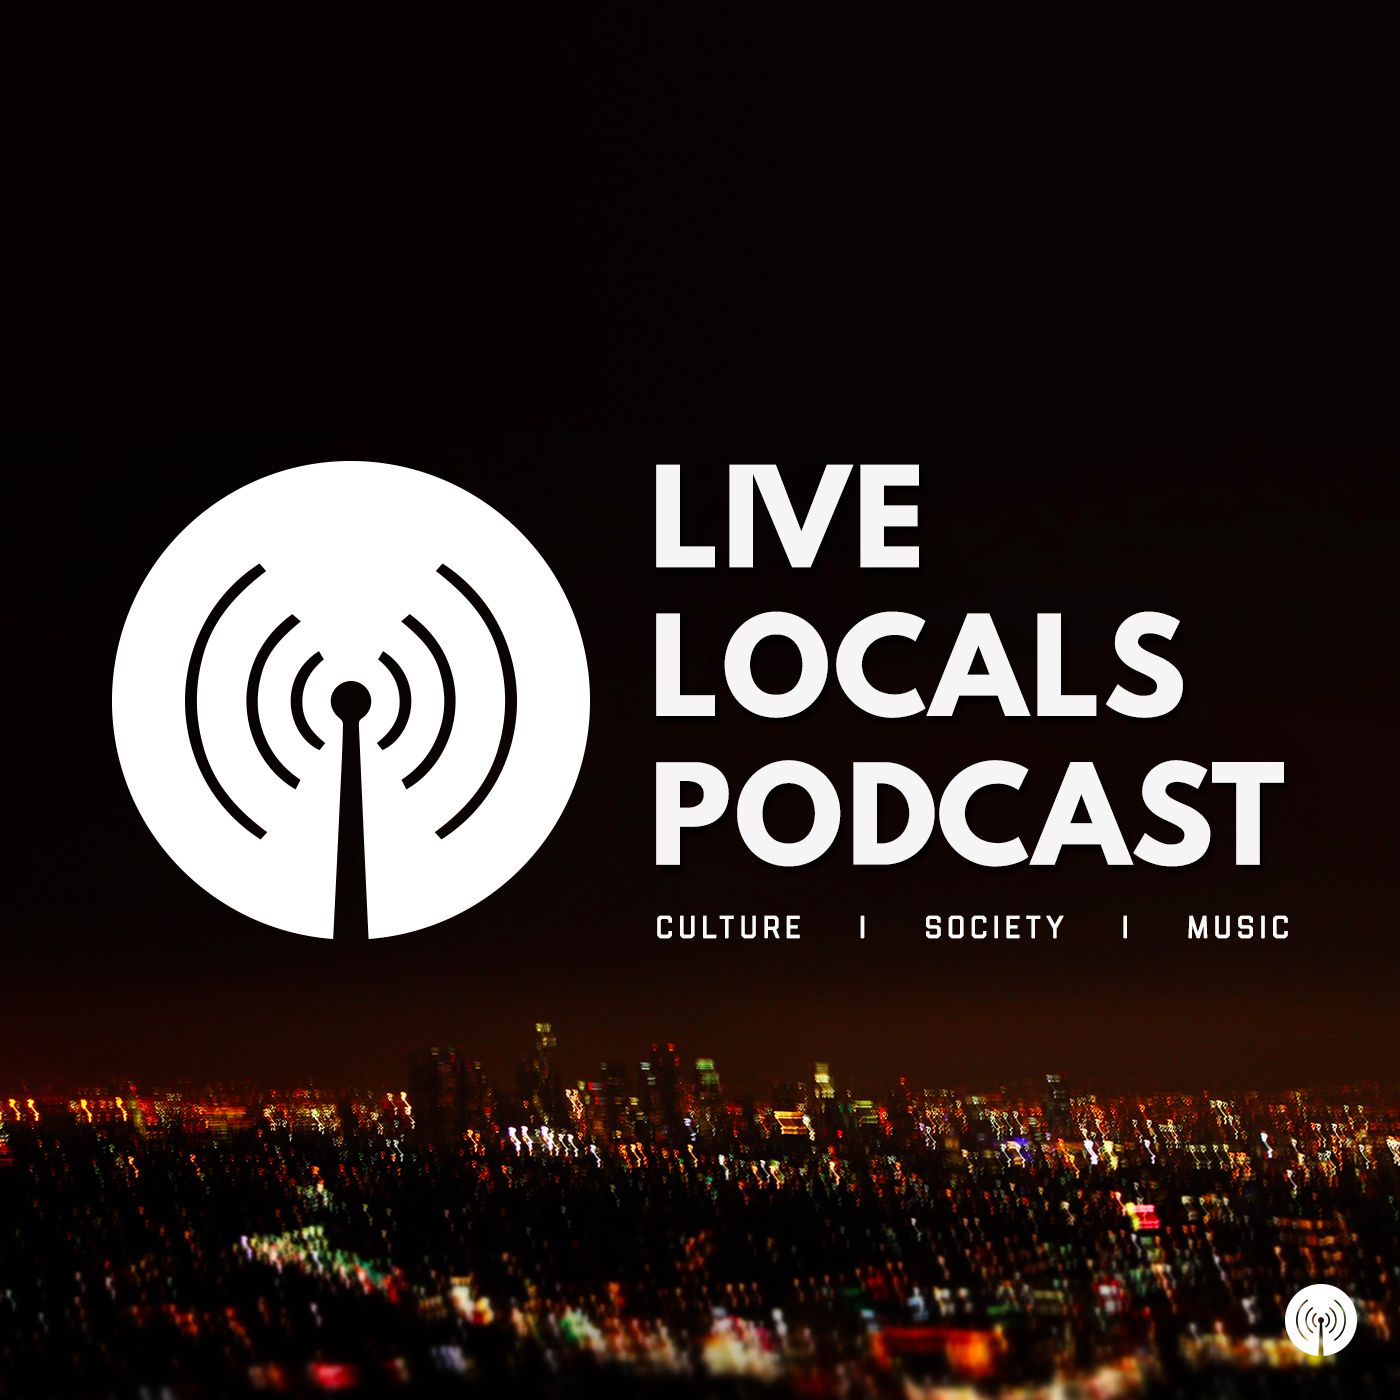 Live Locals Podcast